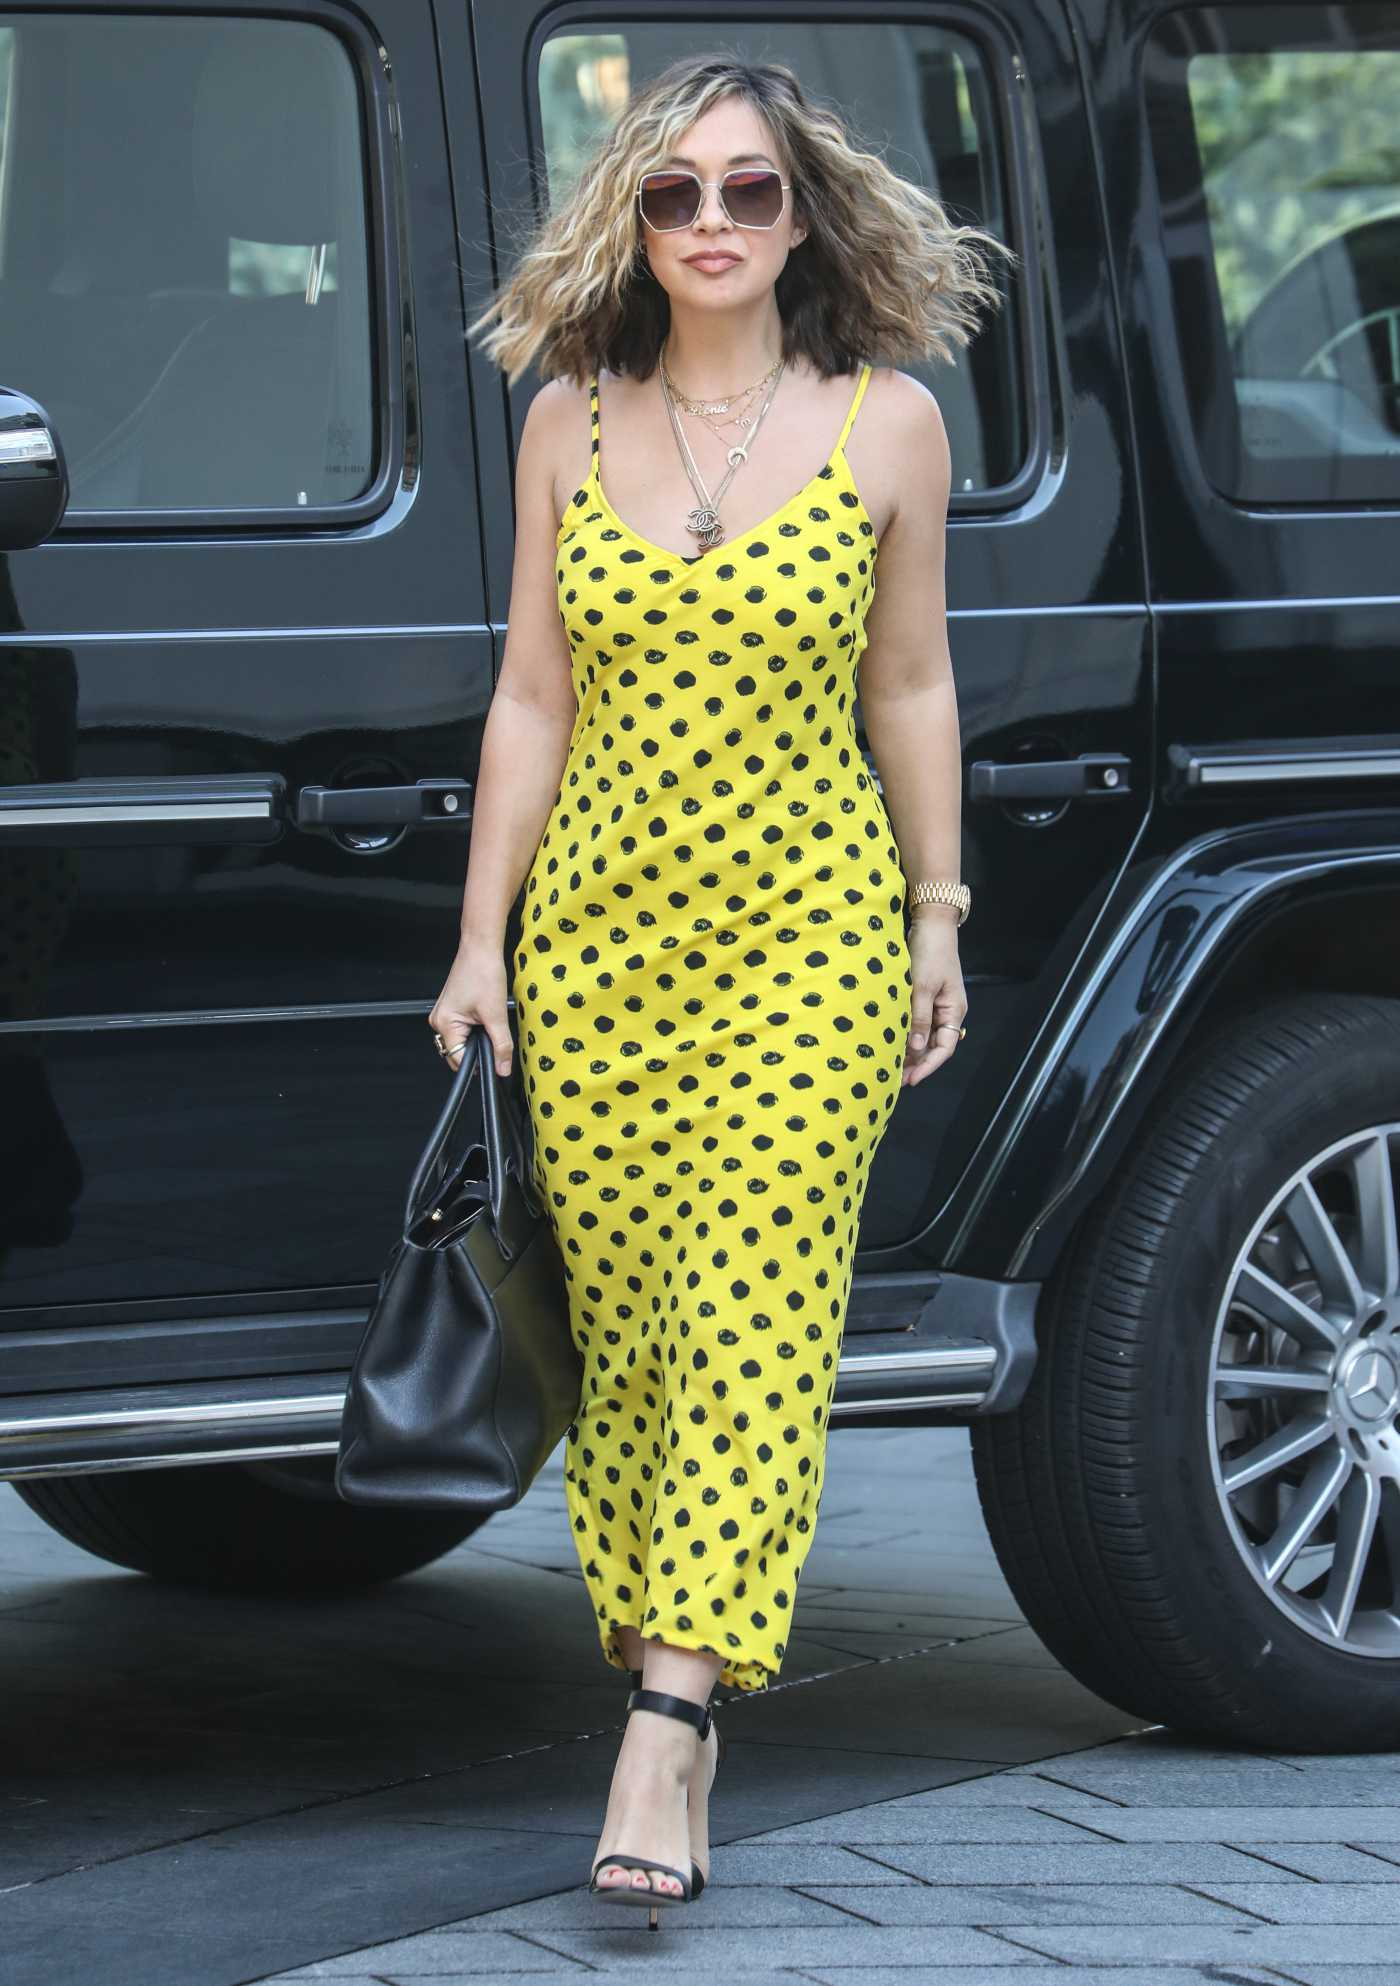 Myleene Klass in a Yellow Polka Dot Sundress Arrives at the Global Radio Studios in London 07/31/2020